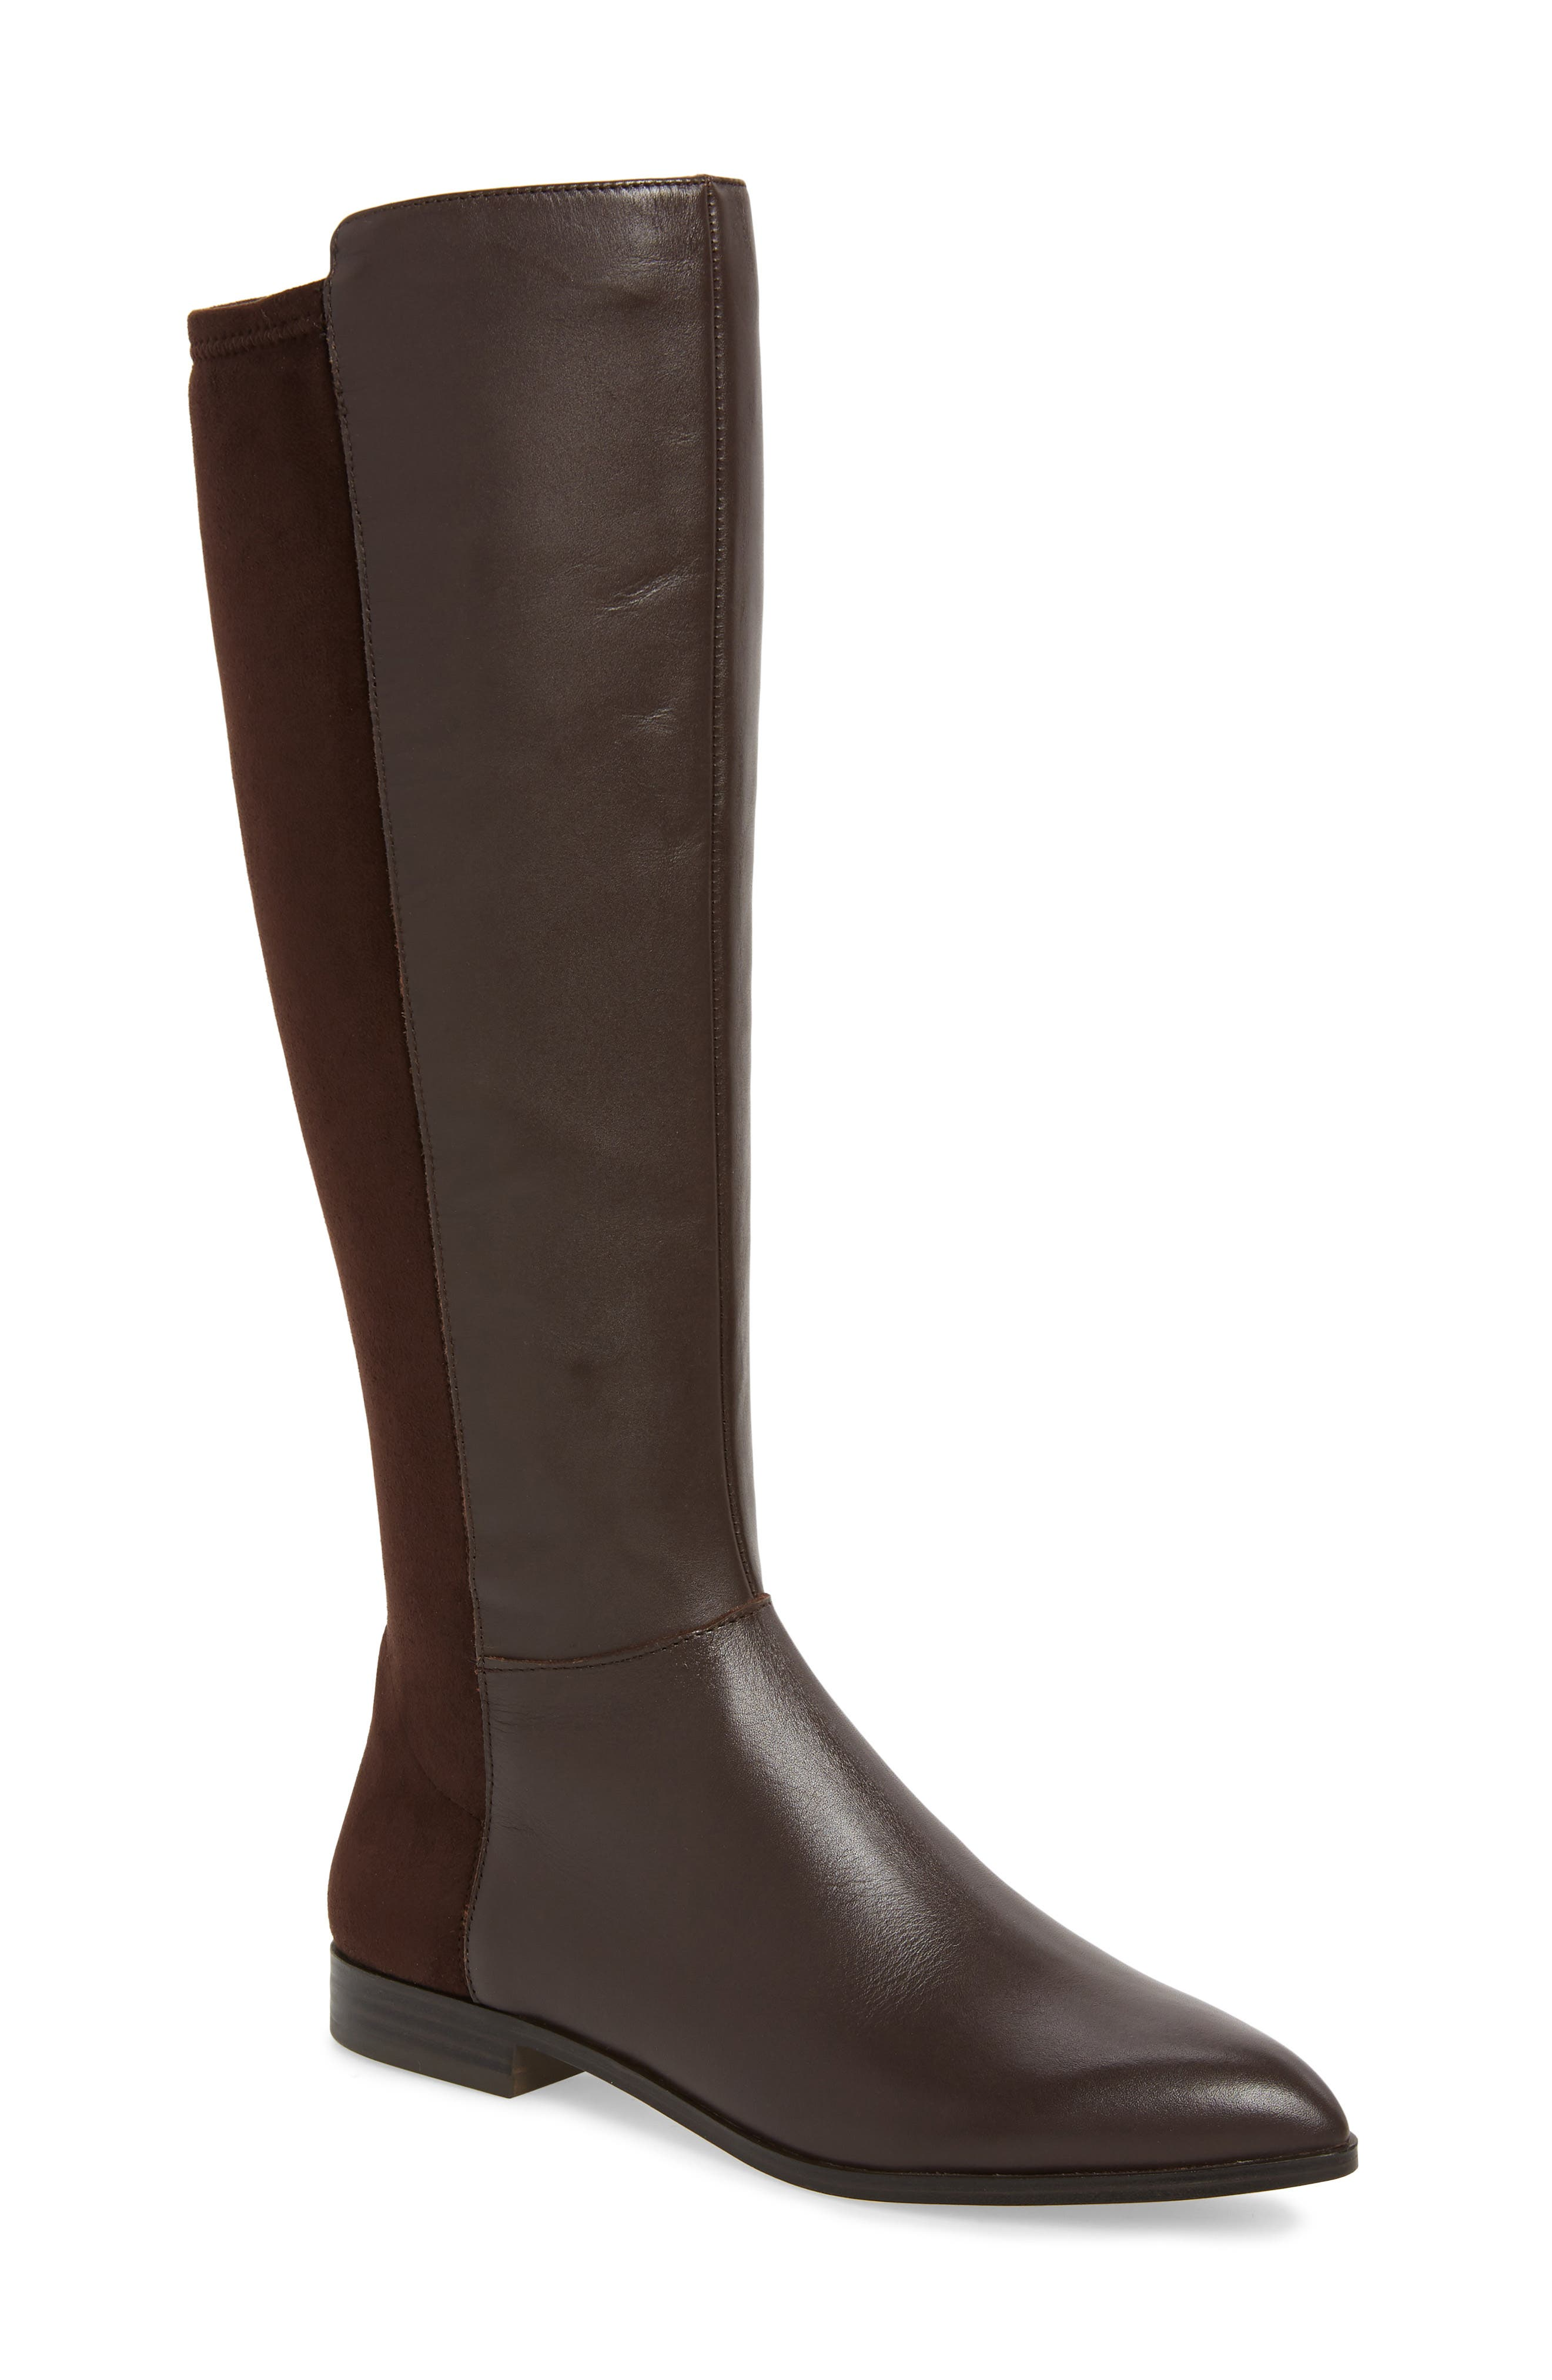 Nine West Owenford Knee High Riding Boot Wide Calf- Brown